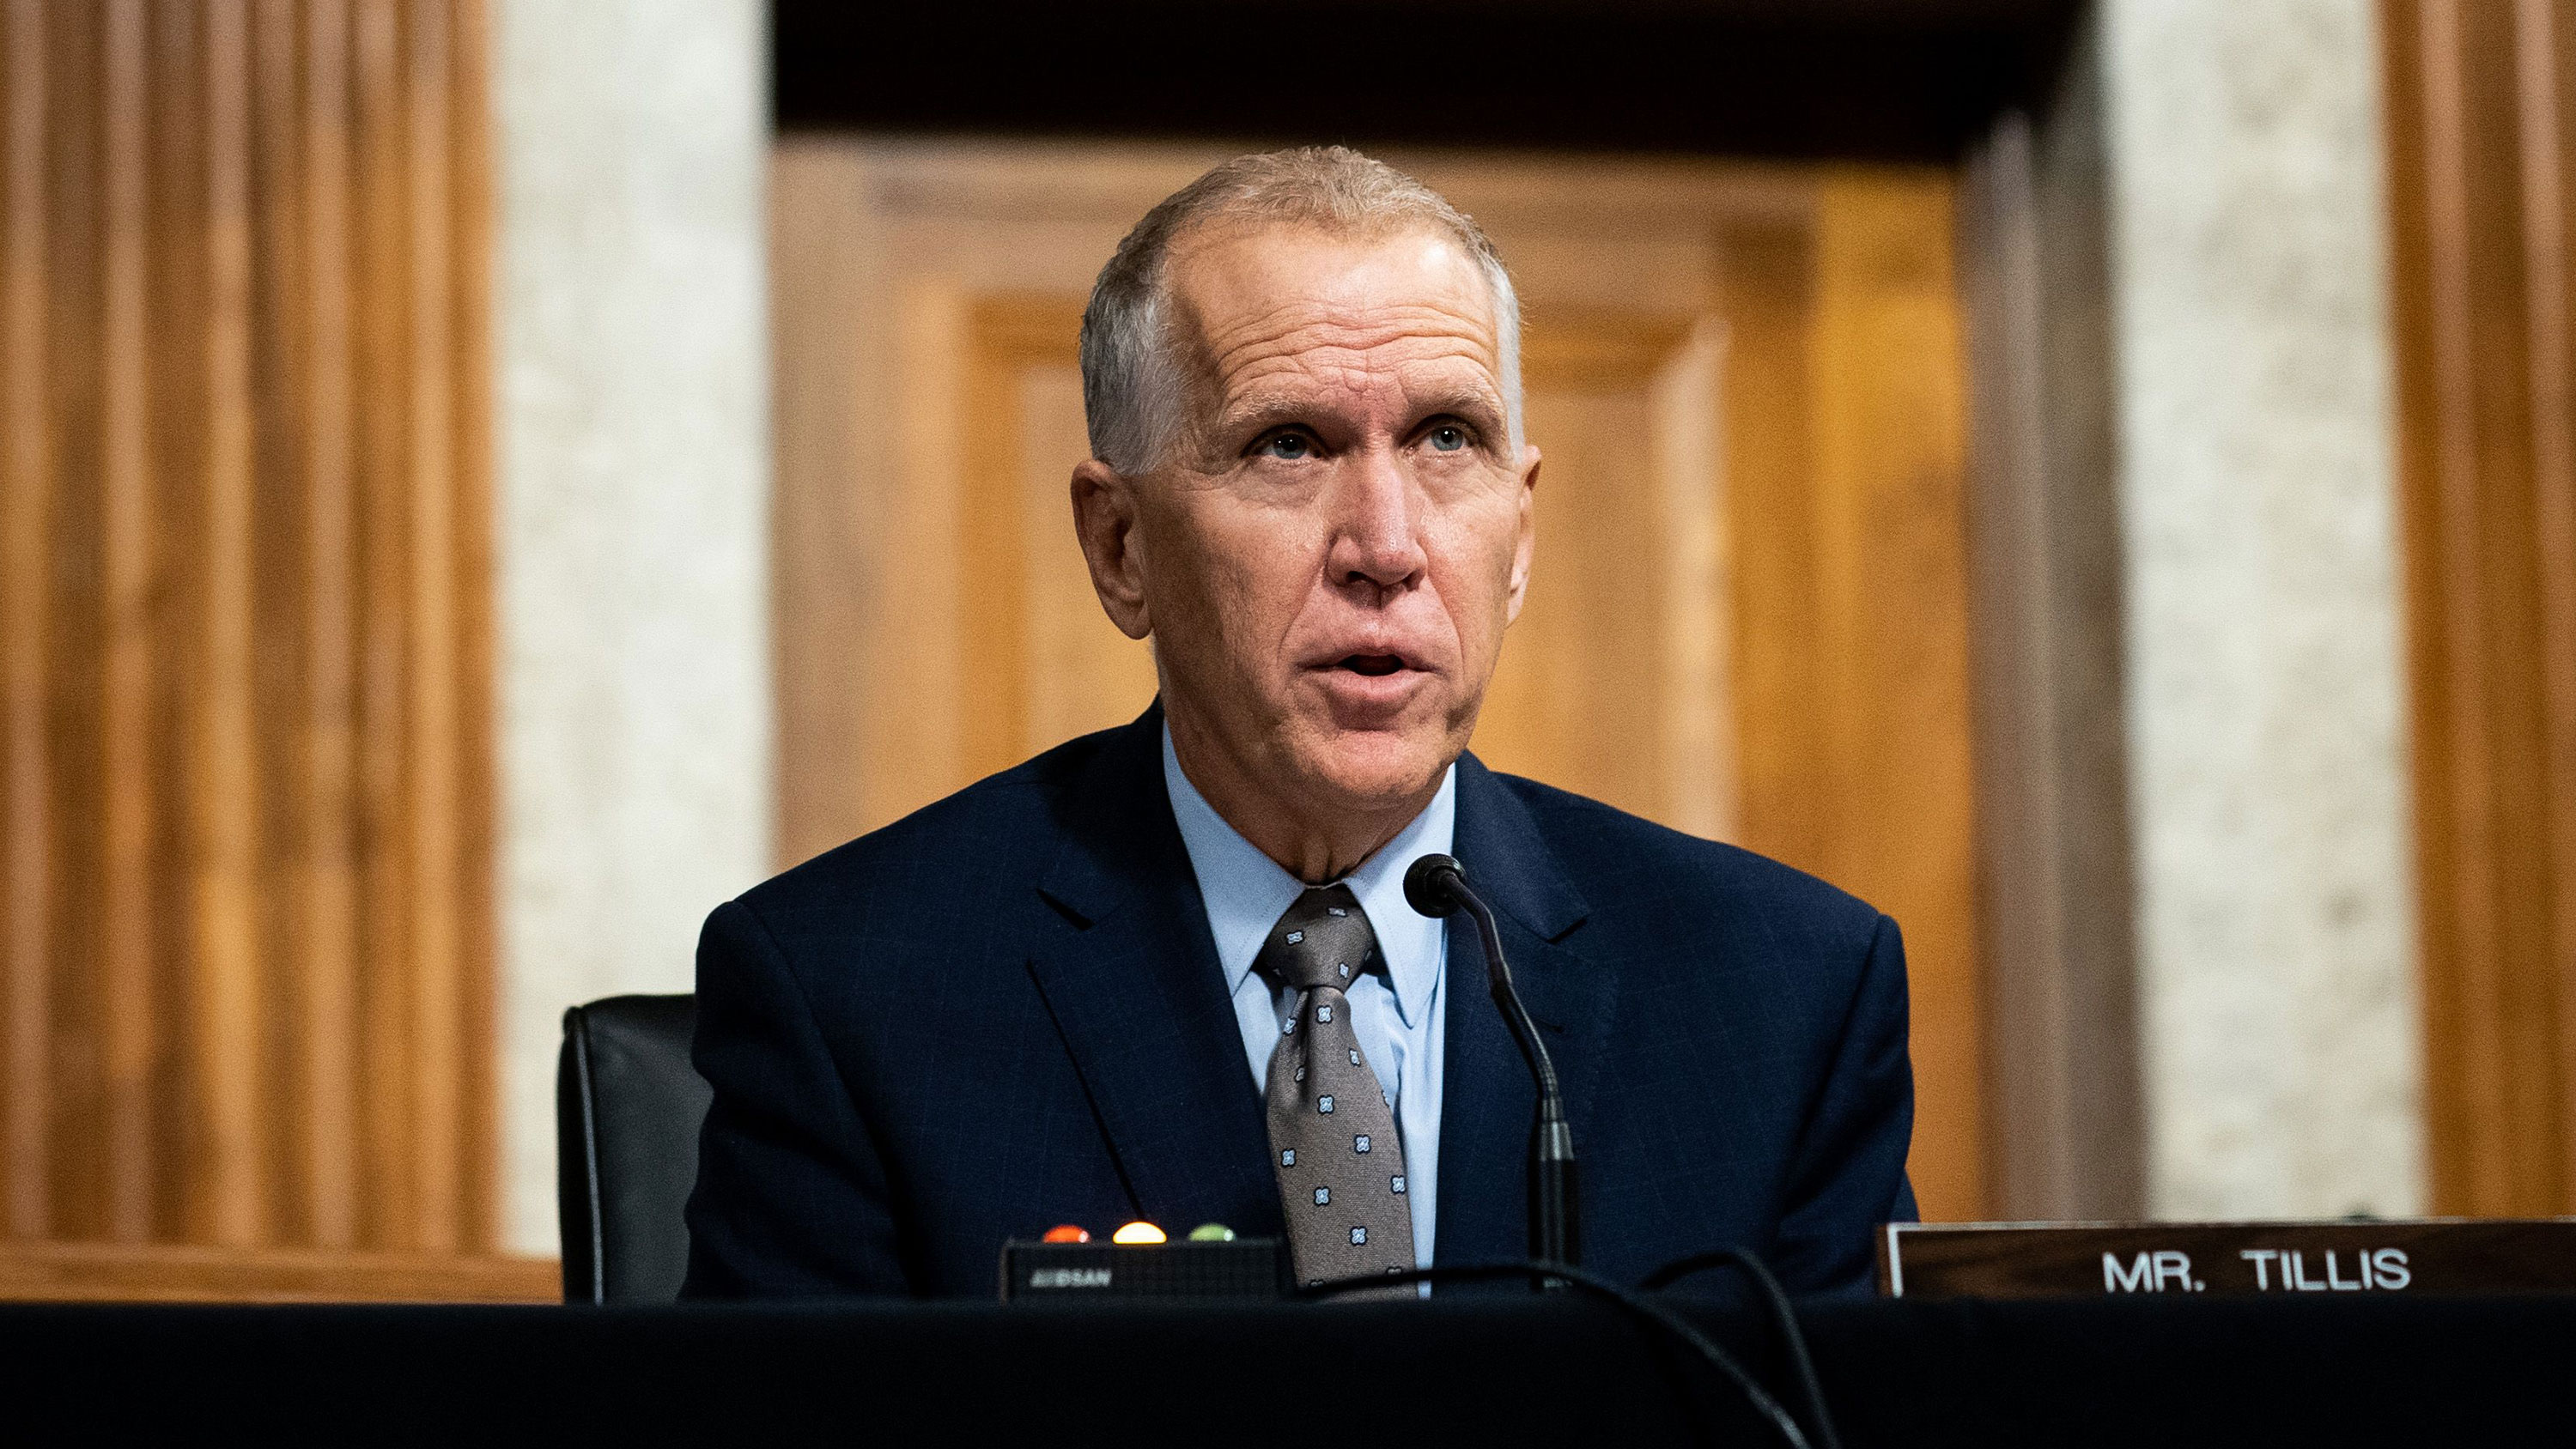 Senator Thom Tillis, of North Carolina, speaks during a Senate Judiciary Committee oversight hearing on Capitol Hill on August 5 in Washington, DC.